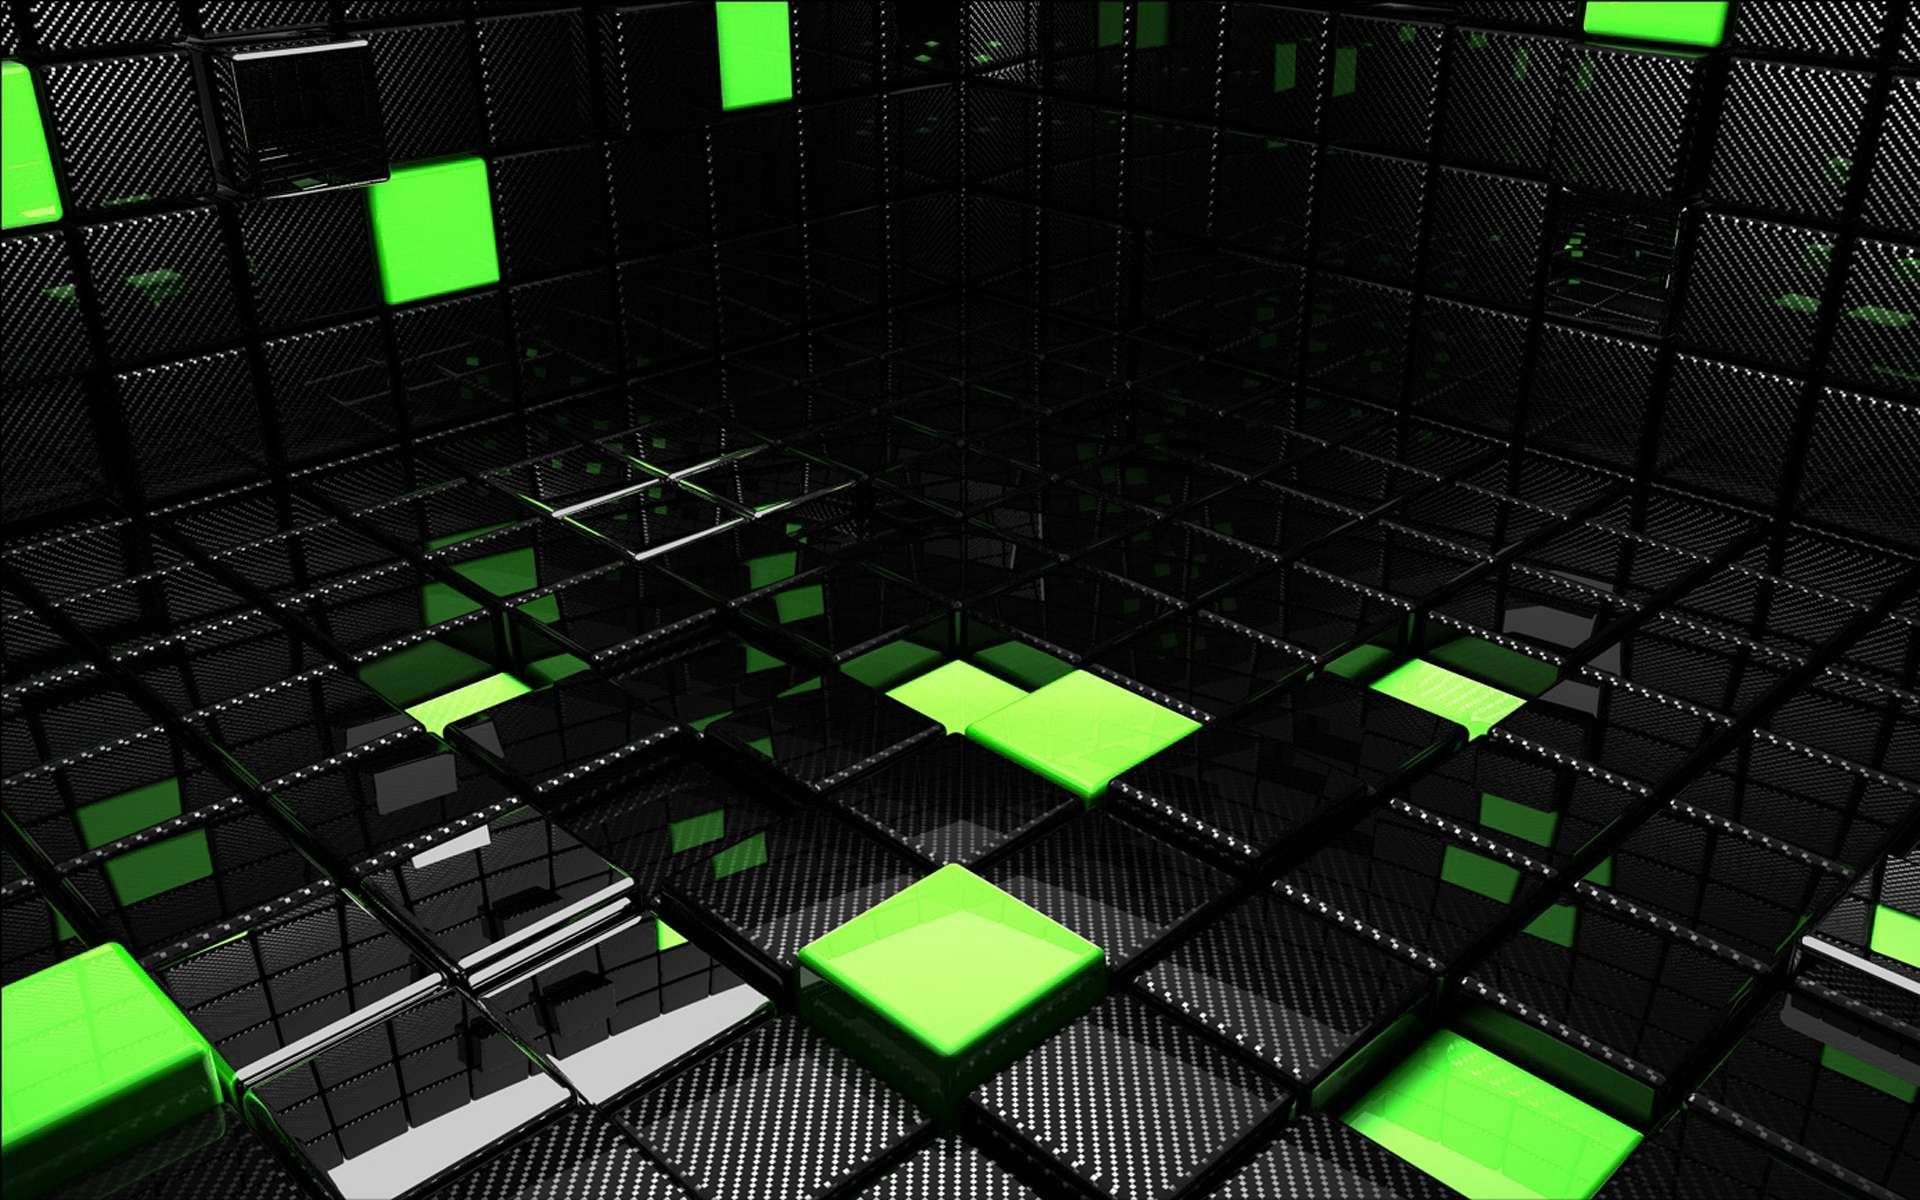 Abstract Design 3d Desktop Hd Wallpaper: 3D Abstract Cube HD Awesome Wallpapers (High Resolution